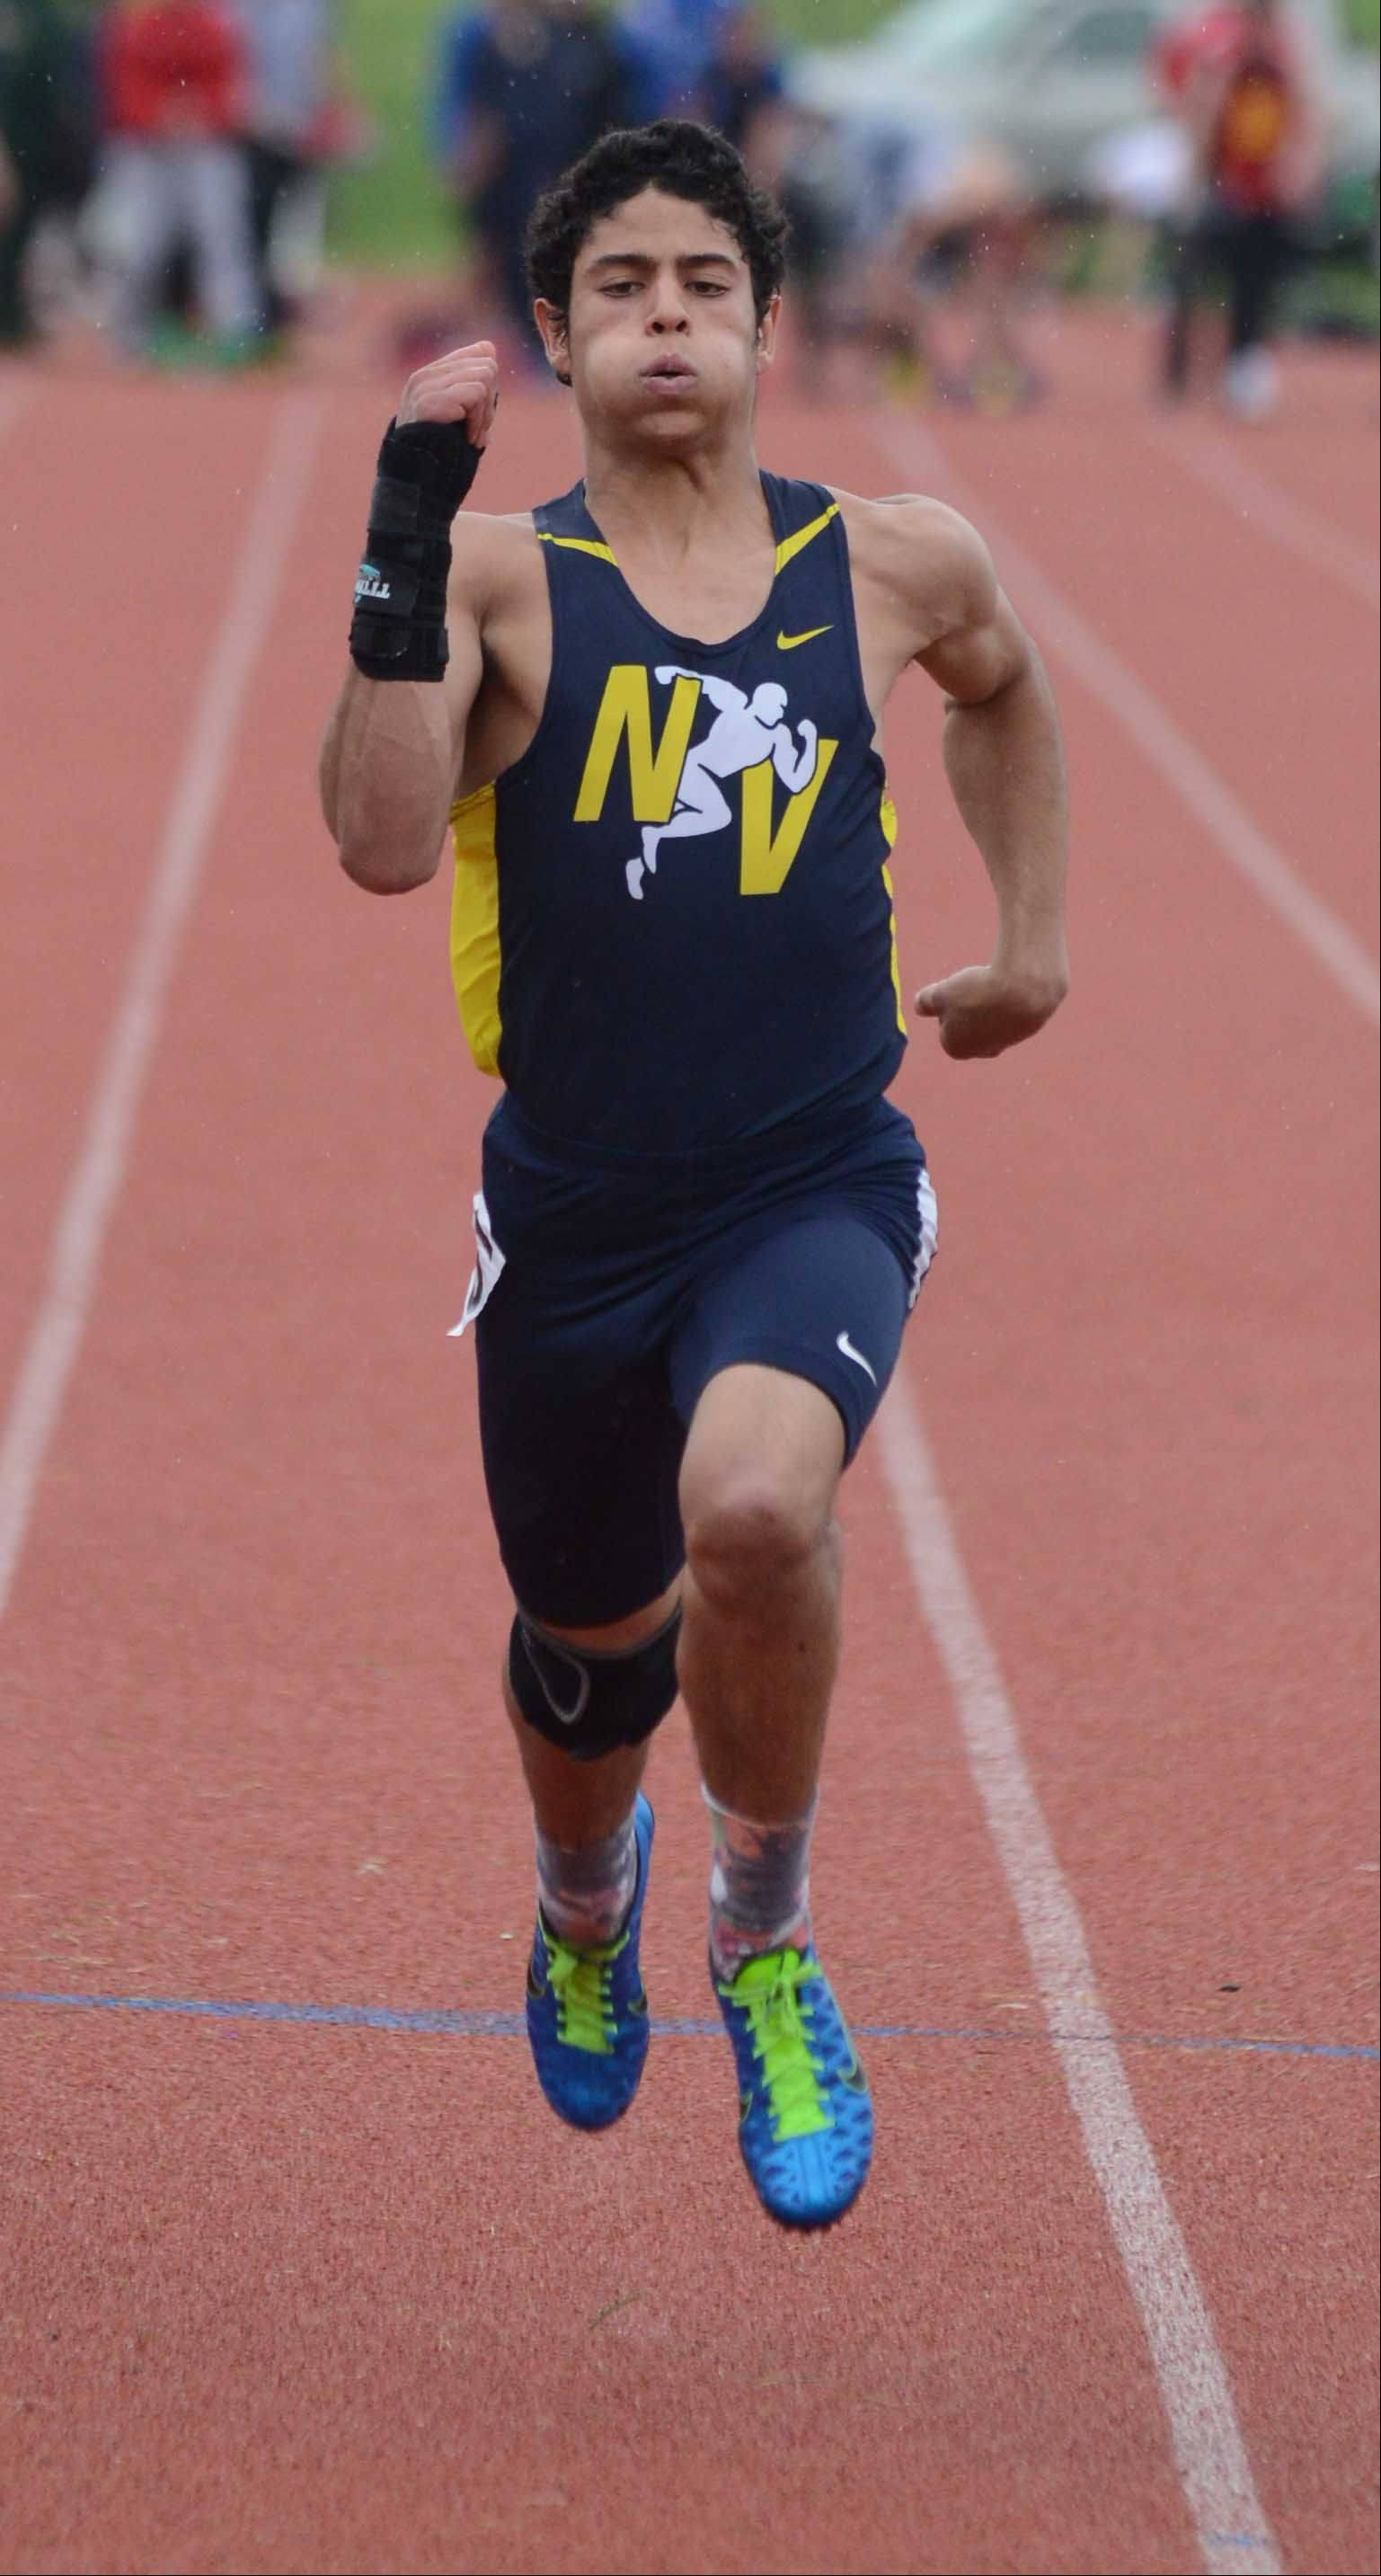 Christopher Malave of Neuqua Valley ran the 100 meter dash during the Upstate Eight Conference boys track finals Thursday. The event was held at Lake Park East Campus.